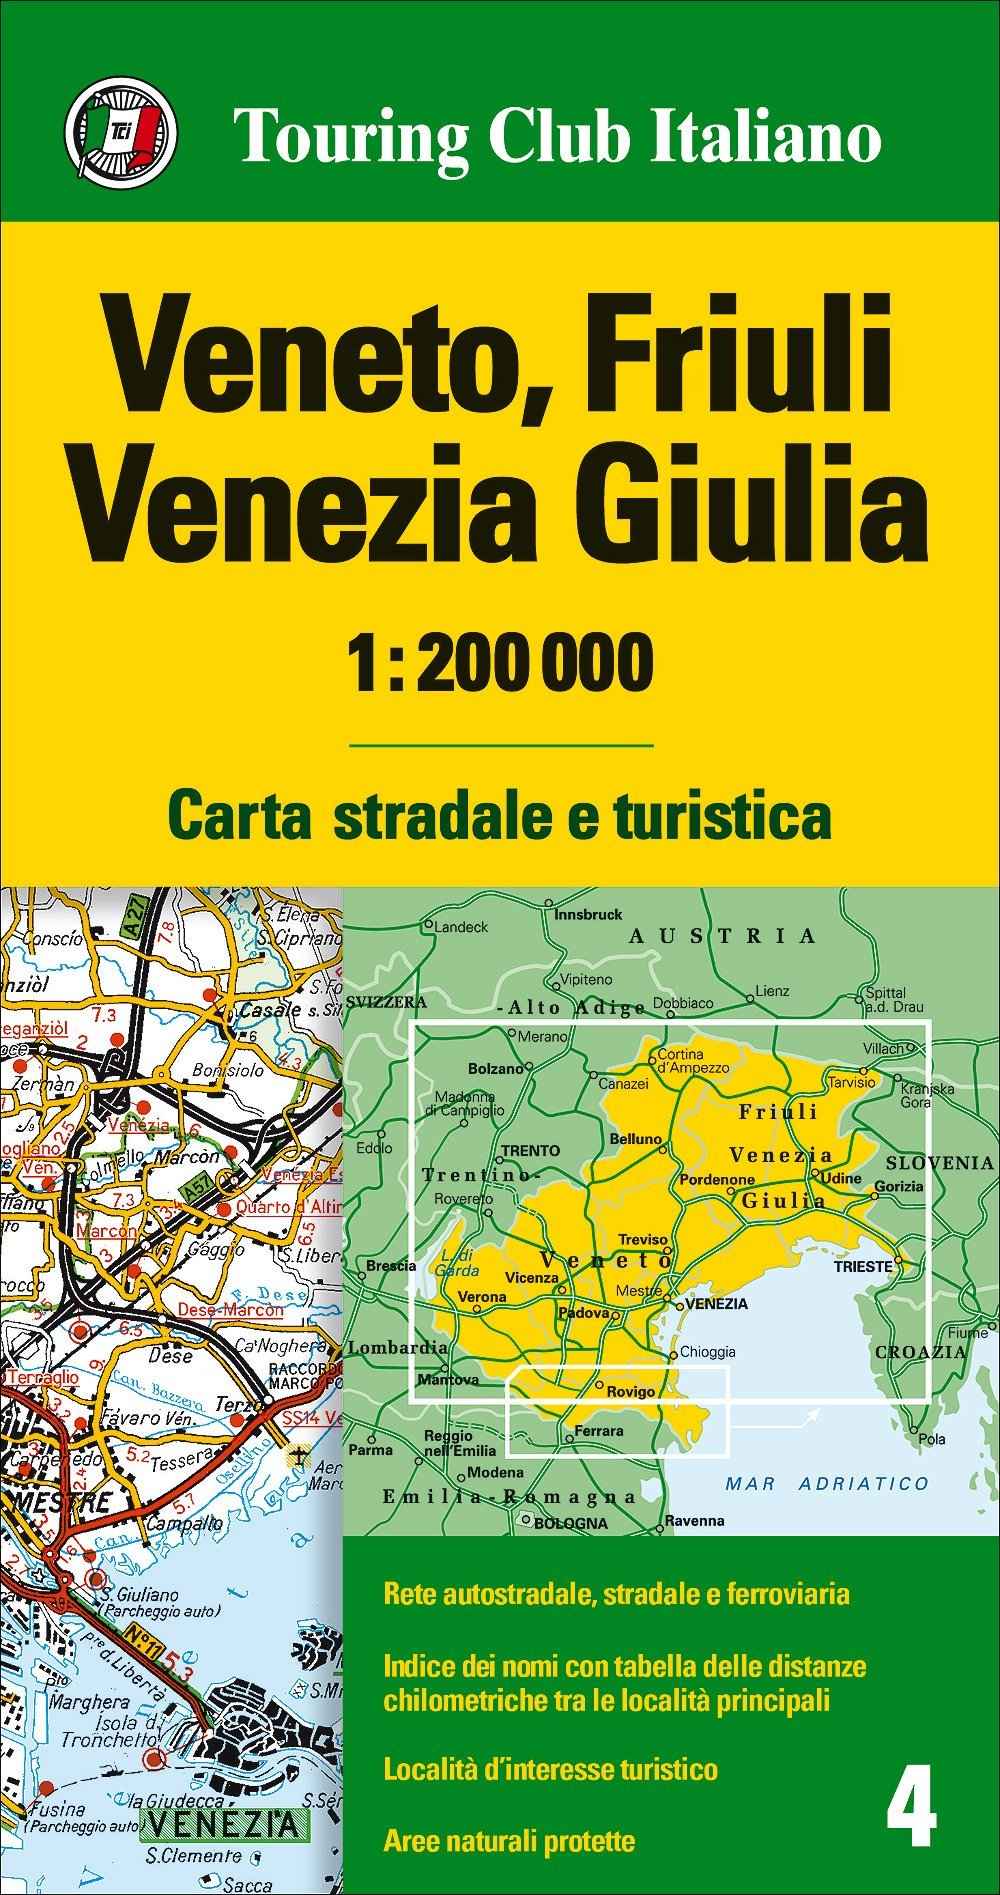 Cartina Turistica Venezia.Amazon It Veneto Friuli Venezia Giulia 1 200 000 Carta Stradale E Turistica Ediz Multilingue Aa Vv Libri In Altre Lingue